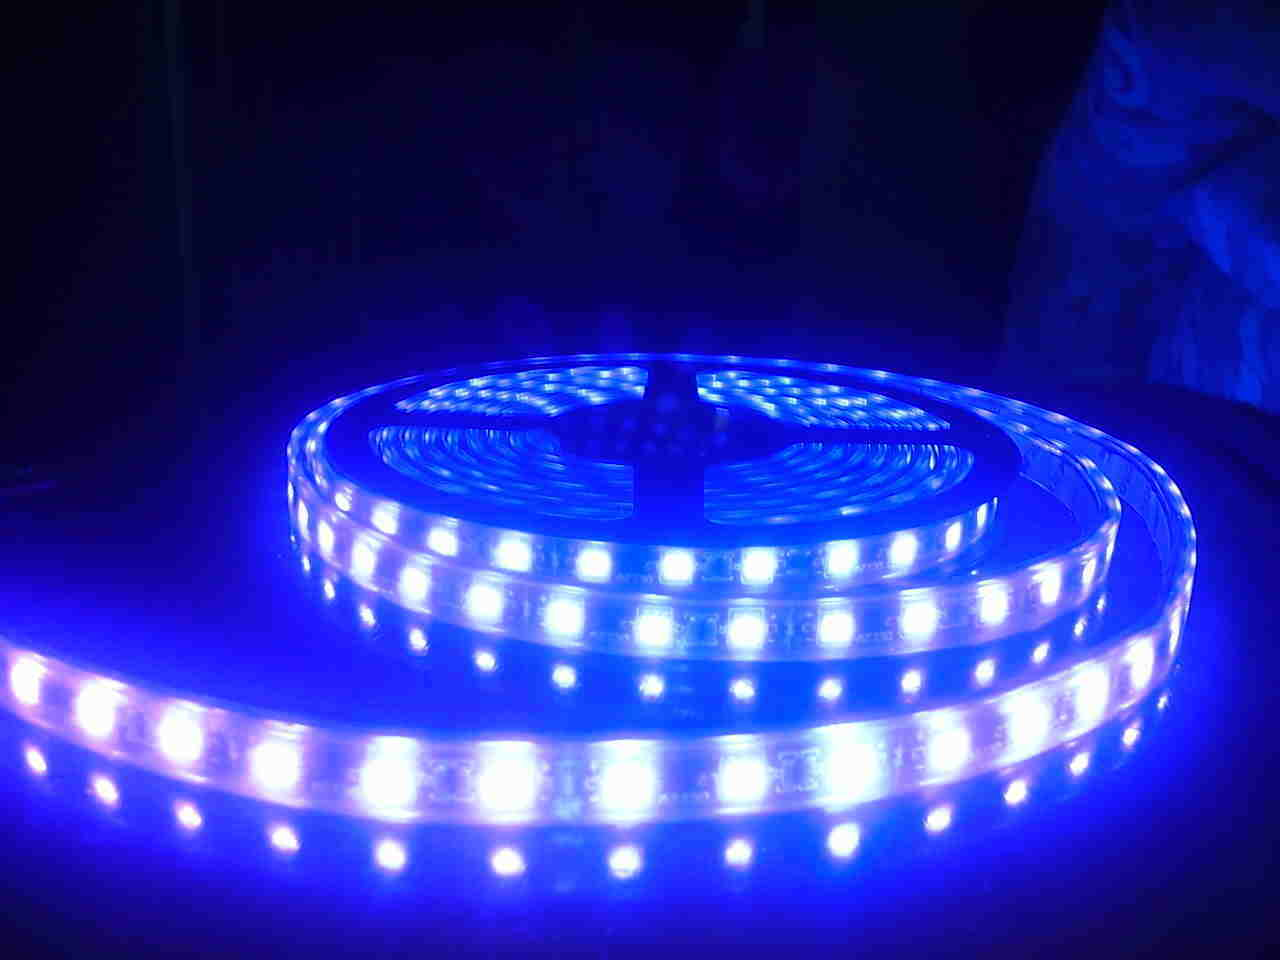 ultraviolet led strip uv black light night fishing strip boat. Black Bedroom Furniture Sets. Home Design Ideas